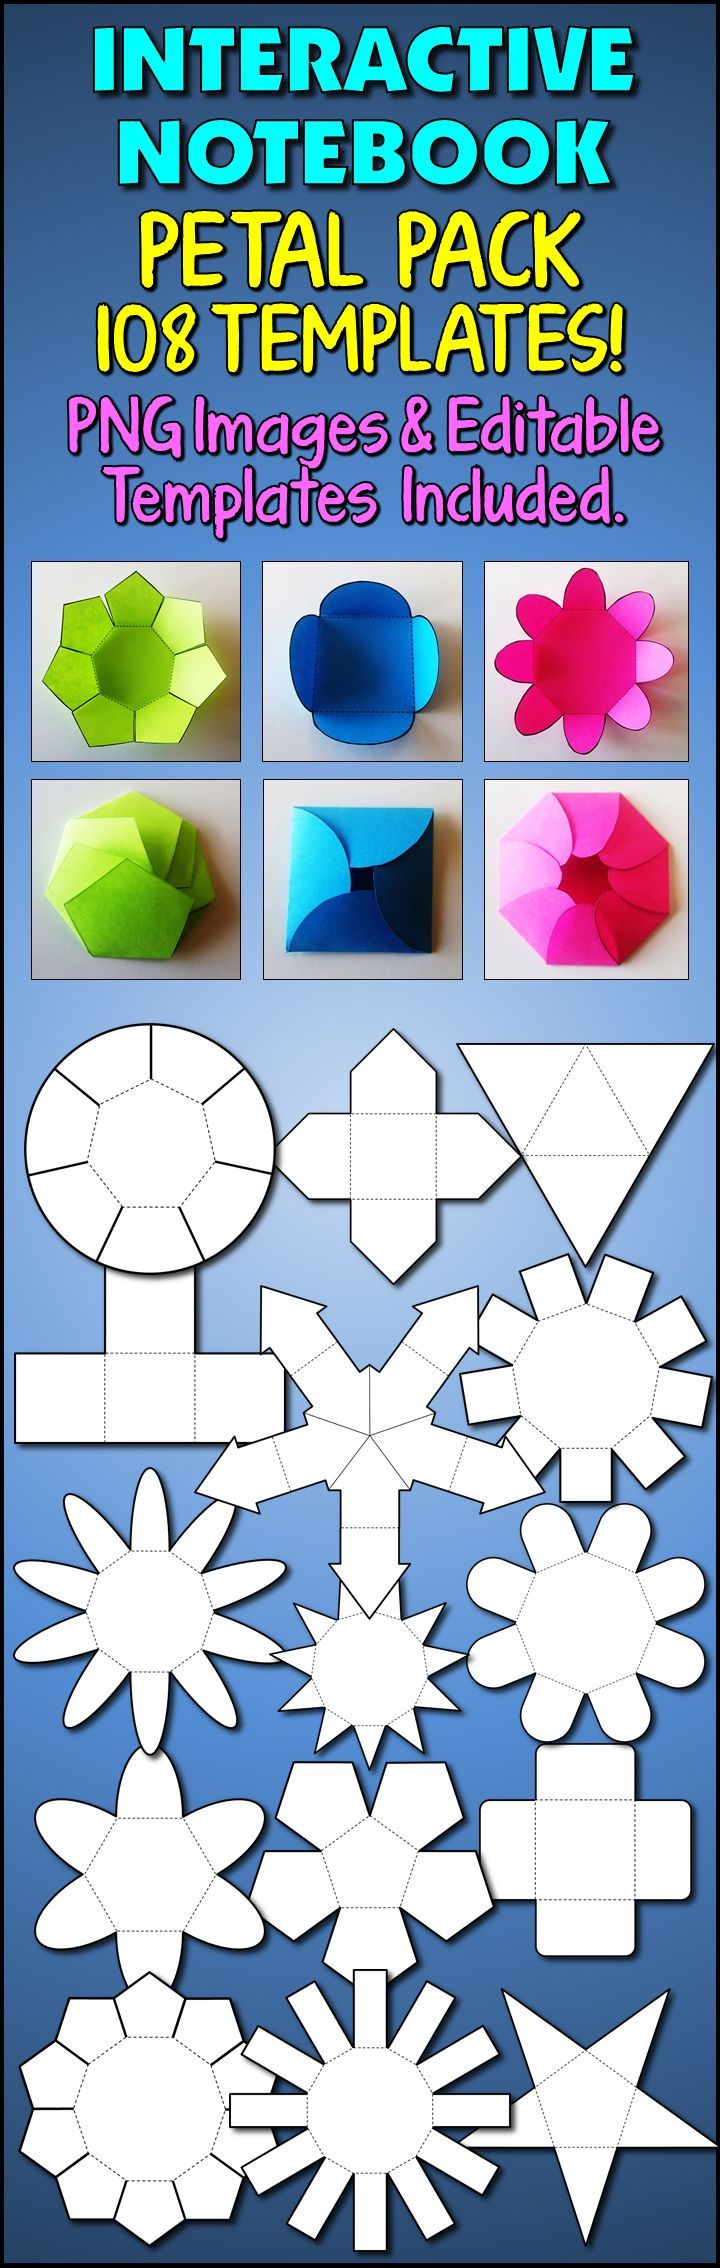 SPICE UP YOUR BULLETIN BOARD!  These 108 petal fold templates can be used to create interactive elements to your board.  Templates includes 3 fold petals up to 12 fold petals in various shapes.  Never be left with a fold or petal number you can't find!